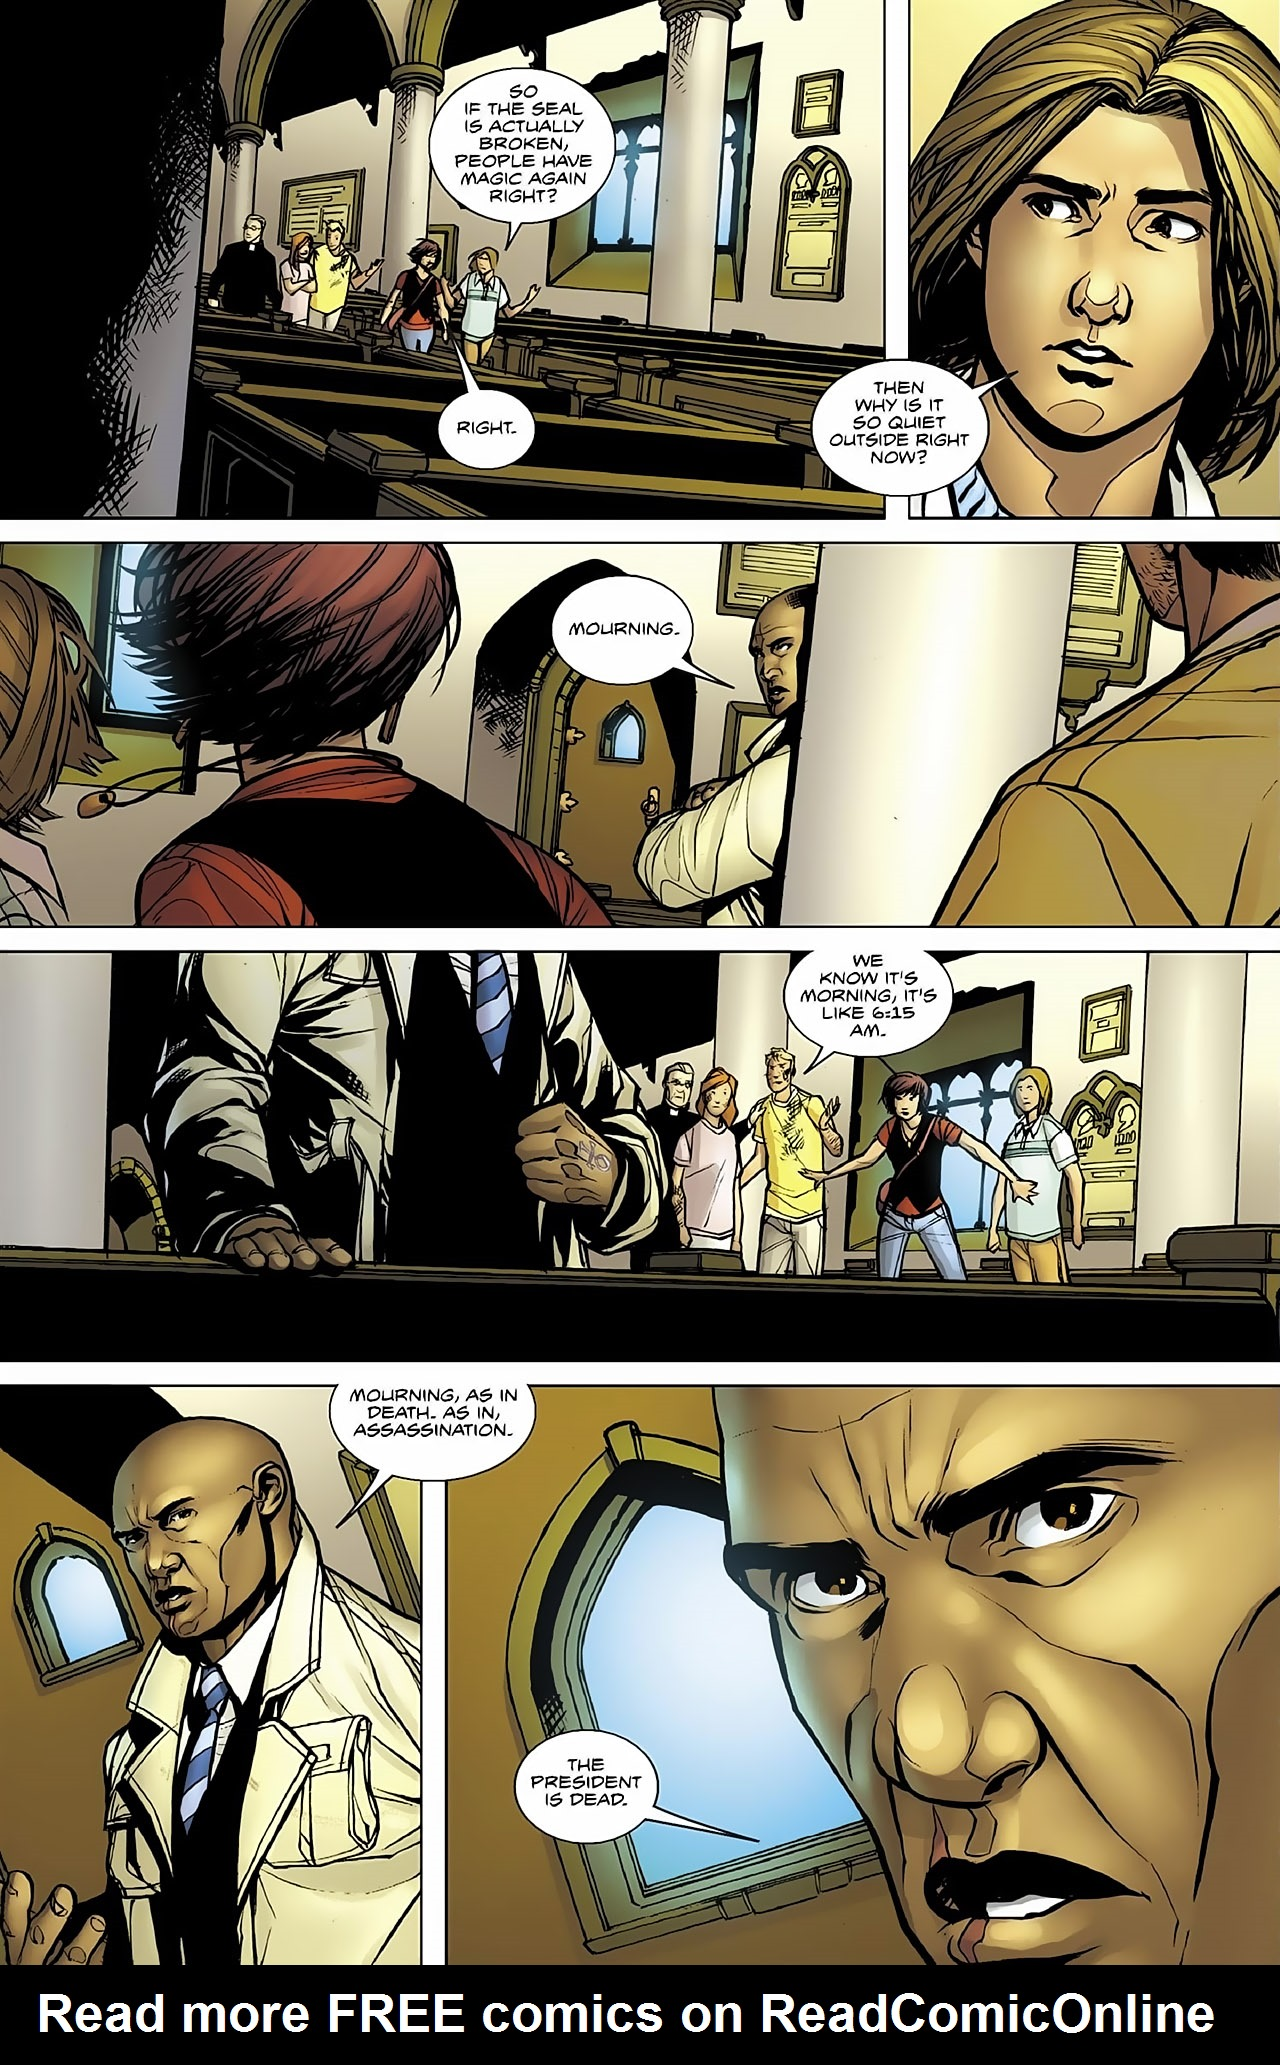 Read online Magus comic -  Issue #4 - 8